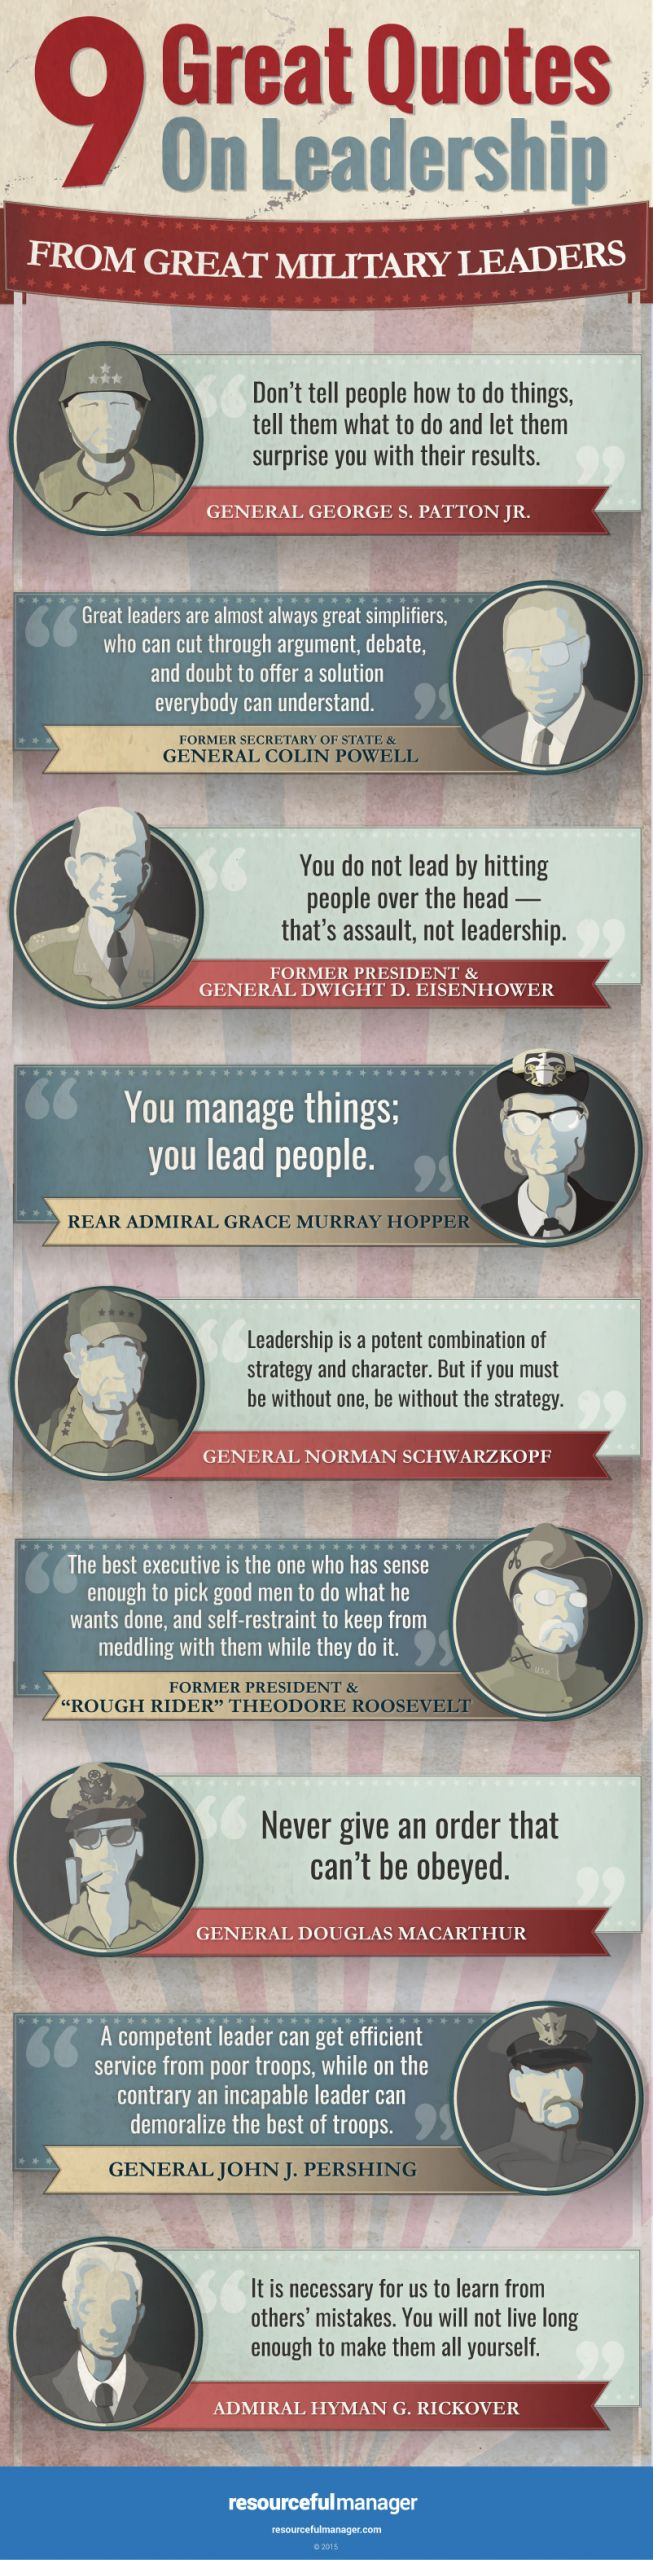 Army Leadership Quotes  9 Leadership Quotes From Great Military Leaders [Infographic]